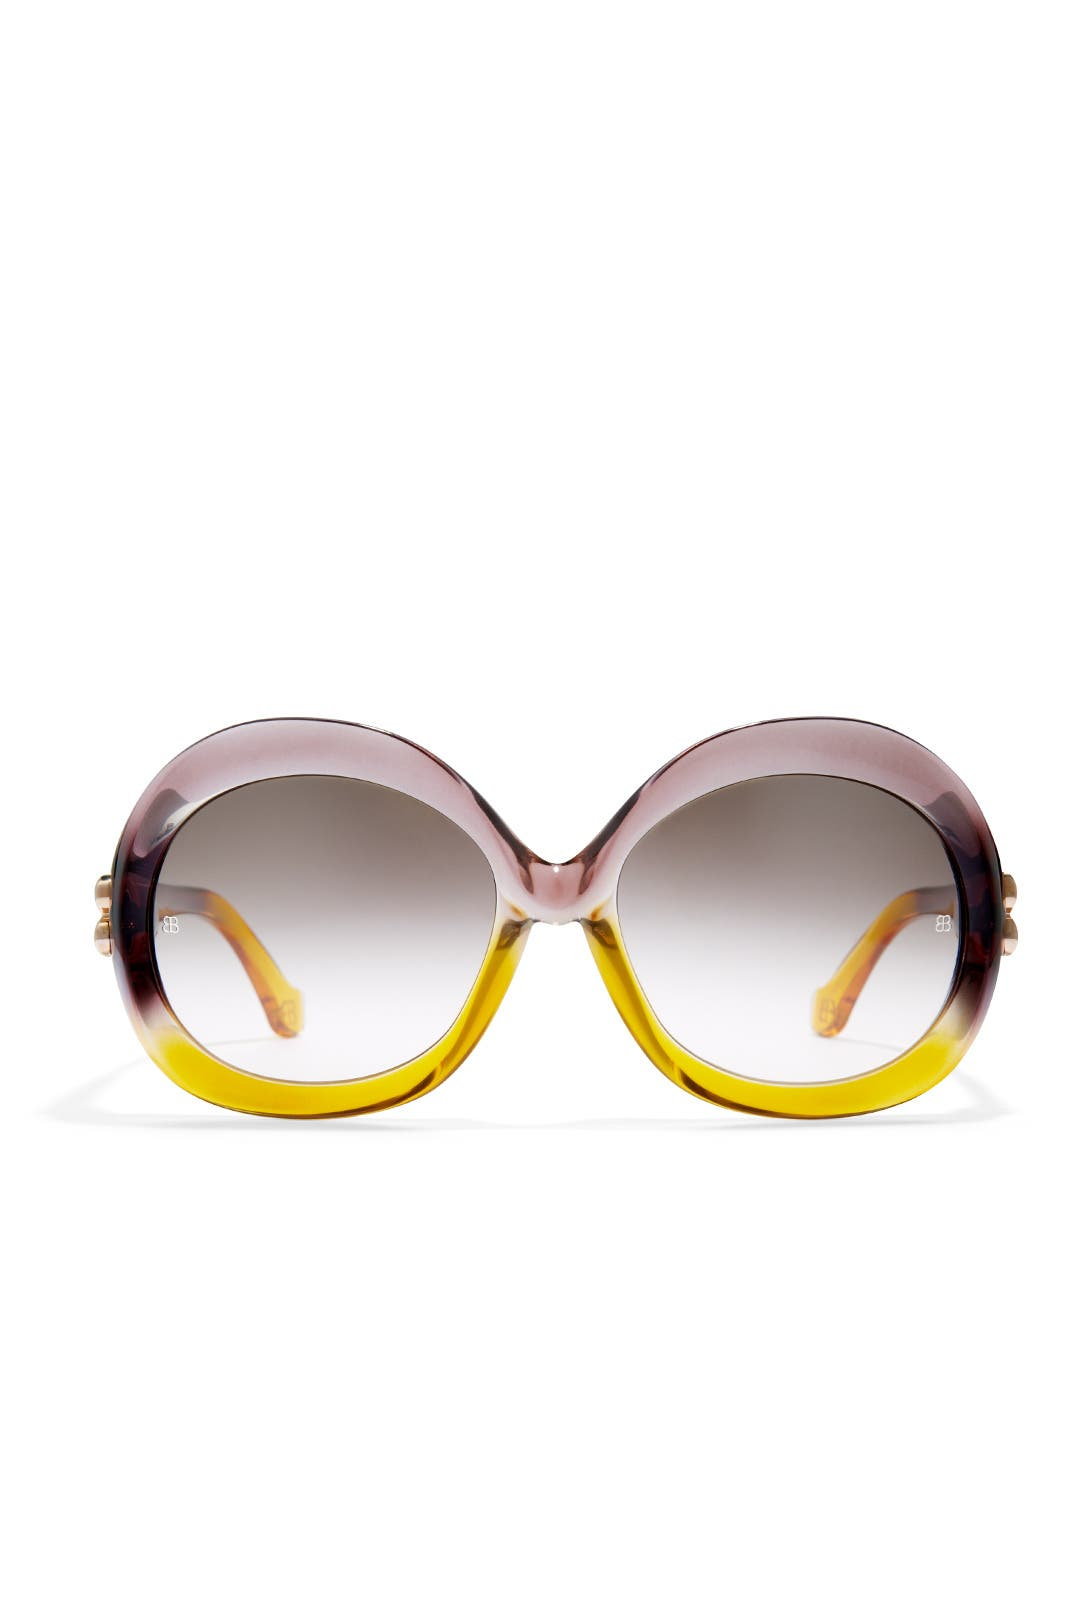 Paradiso Sunglasses by Balenciaga Accessories